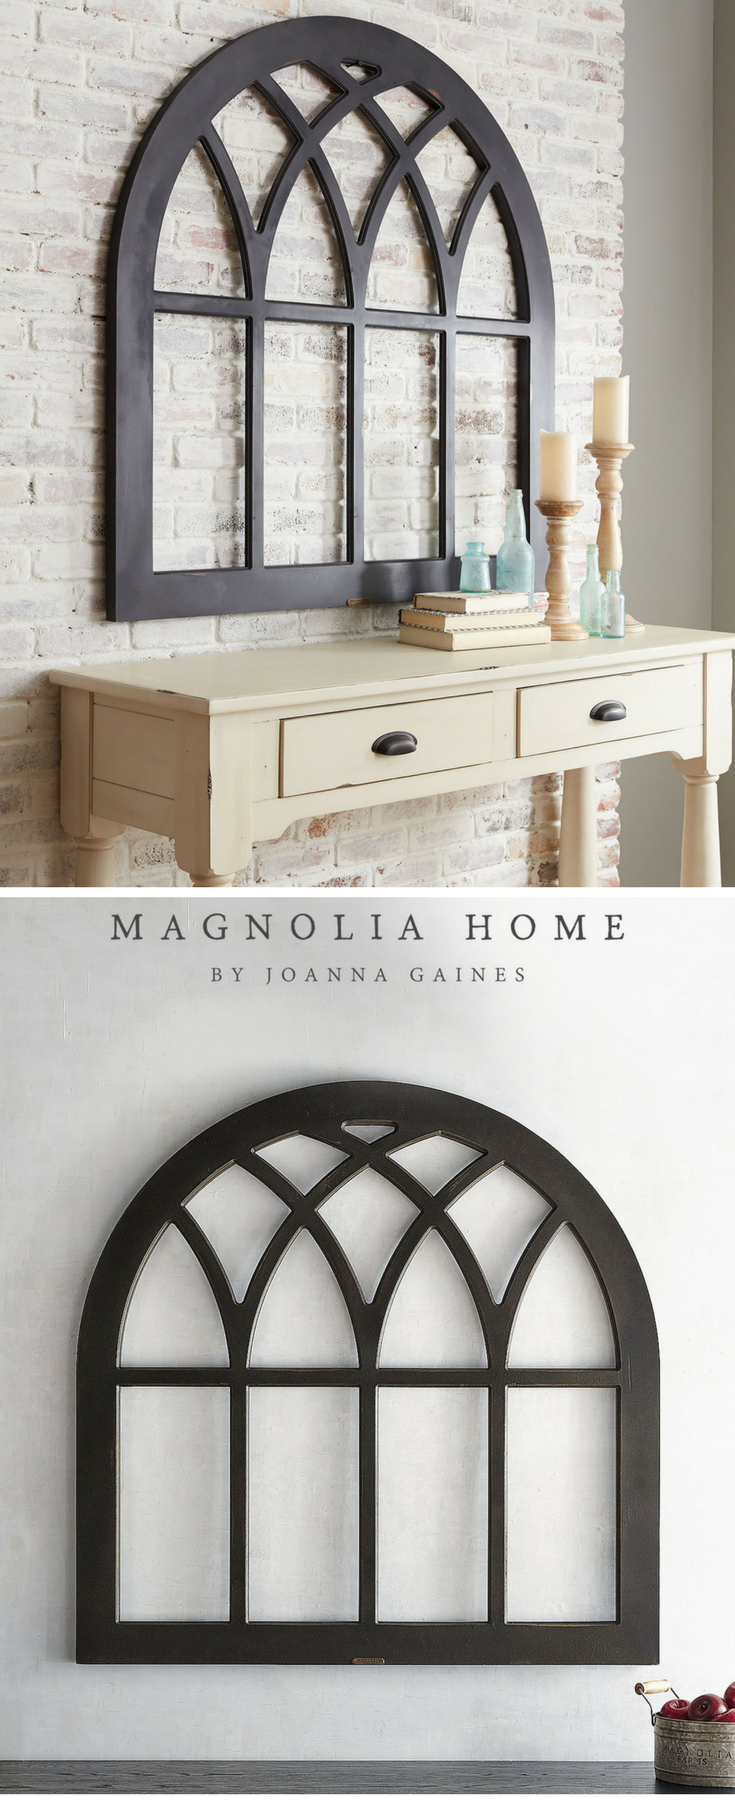 Magnolia home cathedral window frame wall decor farmhouse